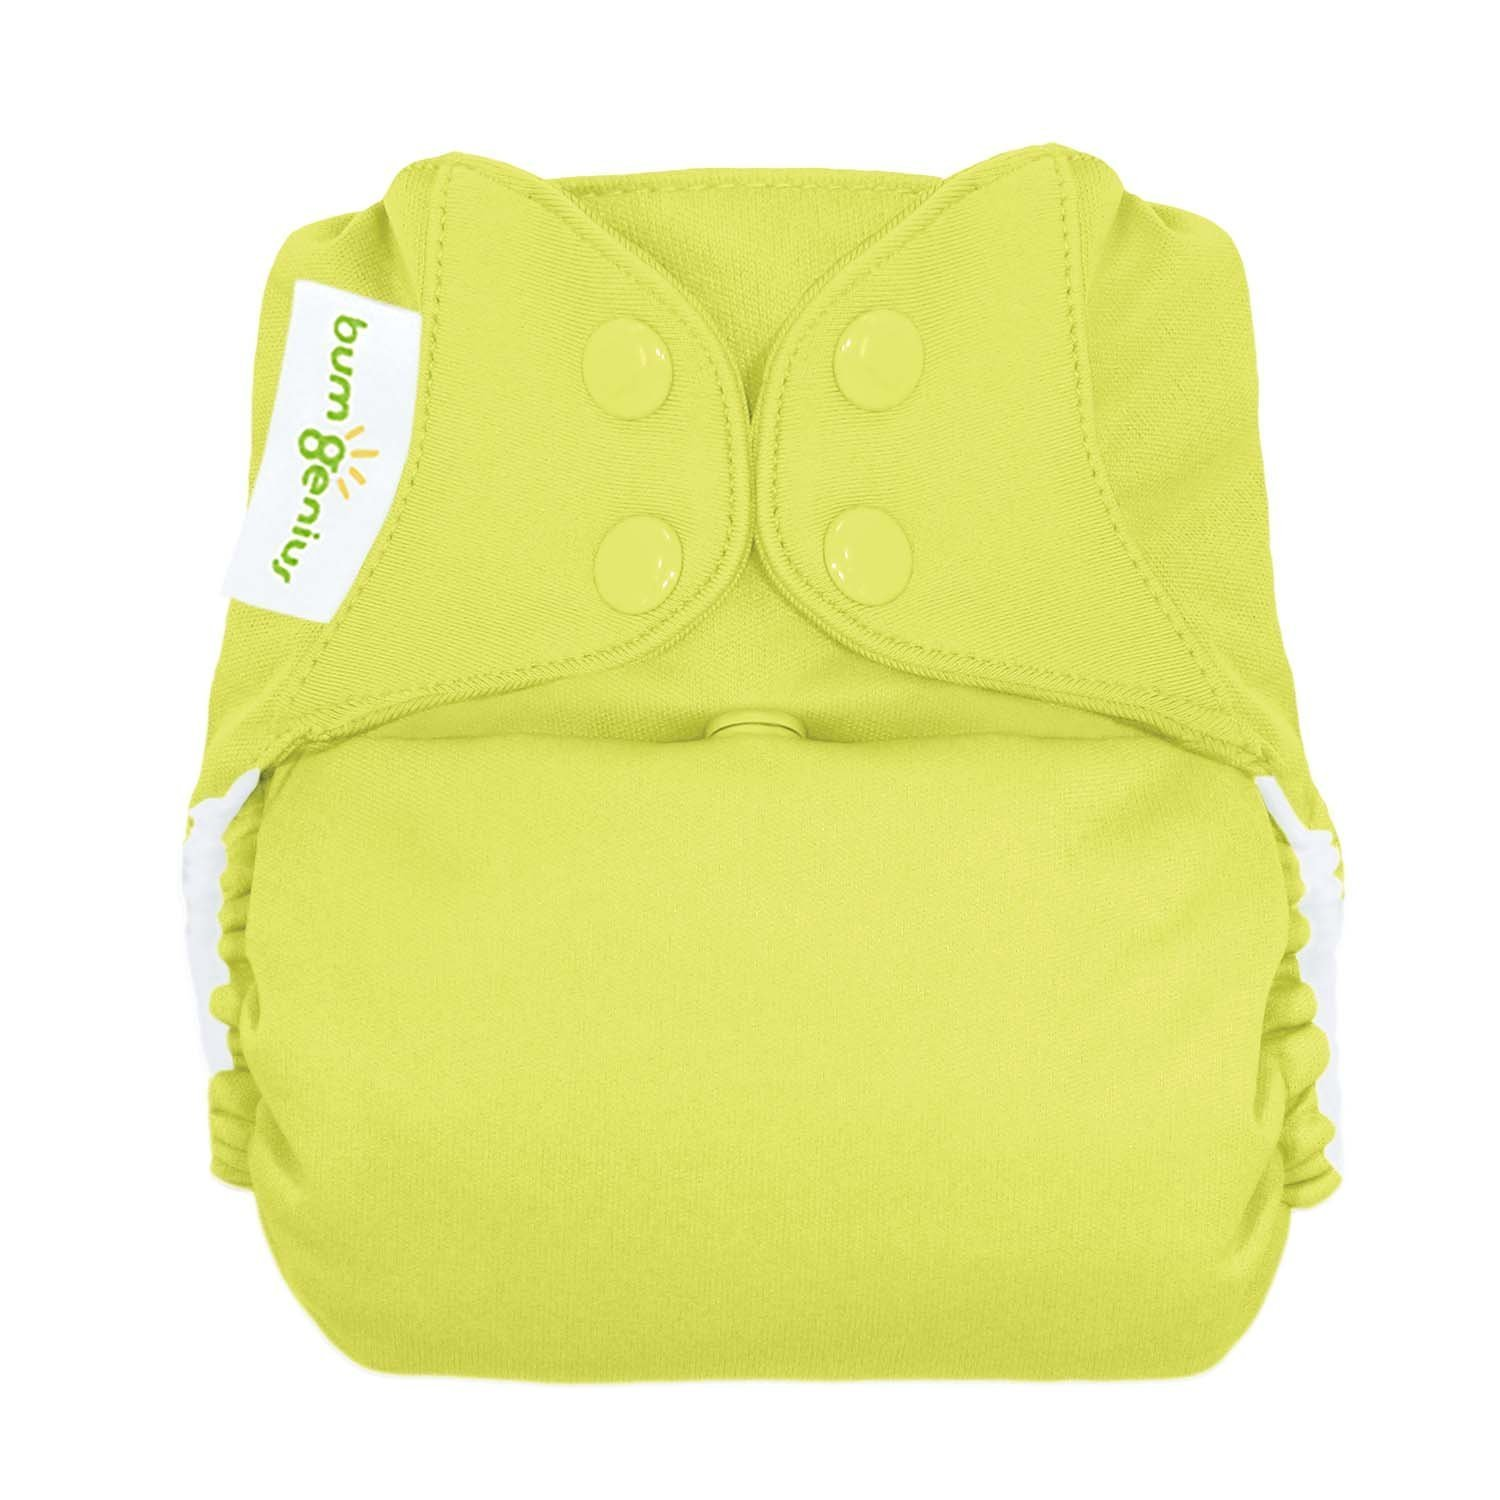 Bumgenius Freetime Cloth Diapers 6 Pack Mixed Colors Snaps by Freetime (Image #7)